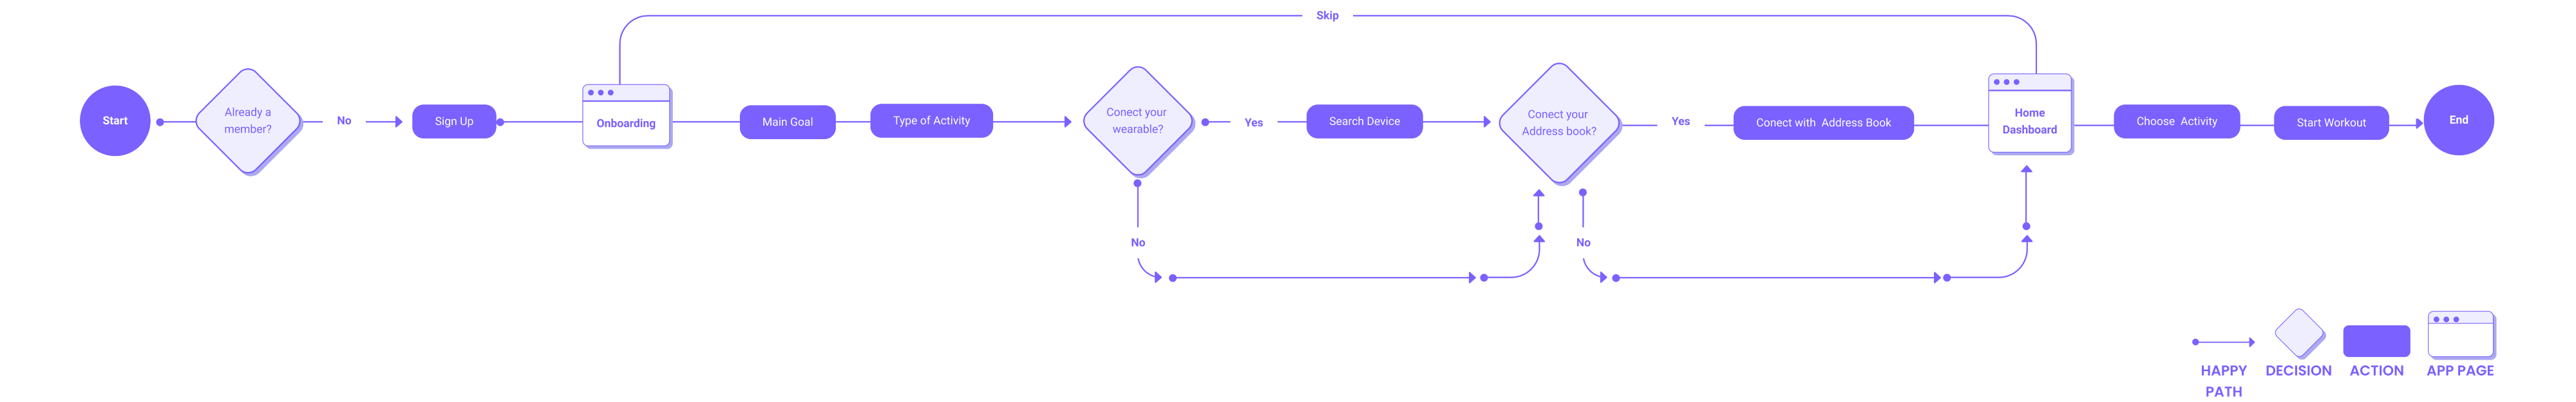 User Flow—Onboarding and chose an activity